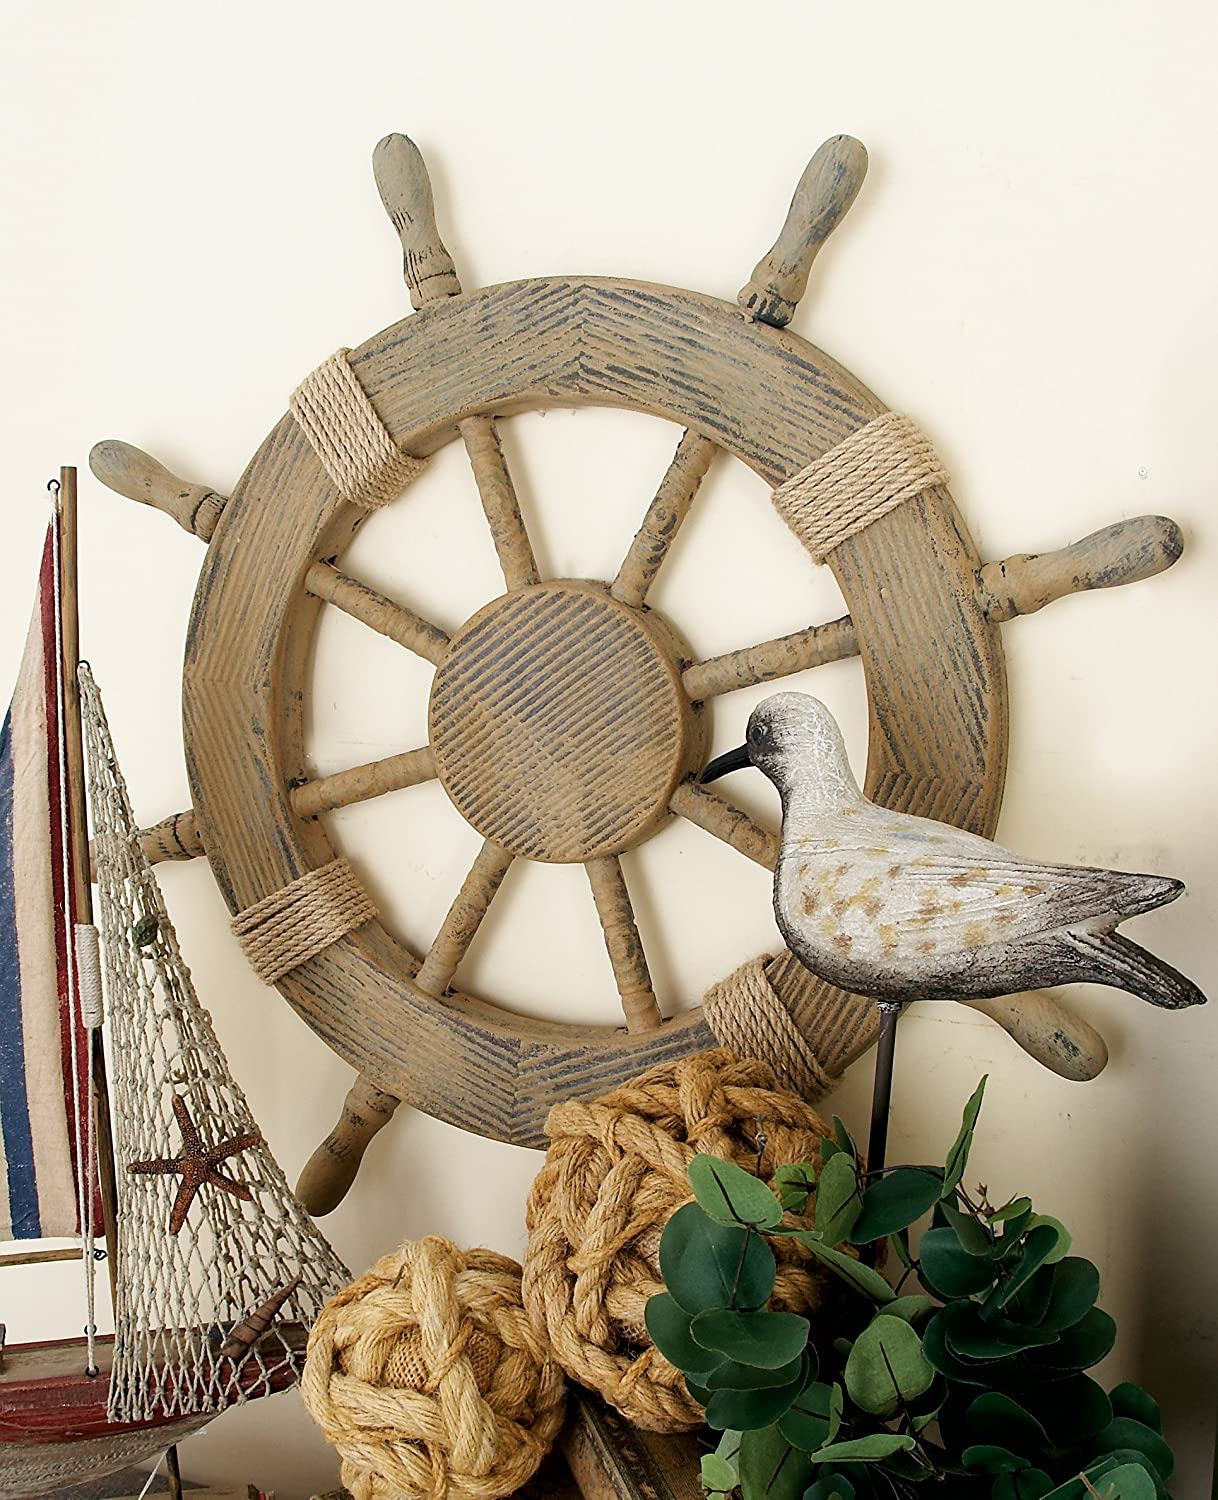 Amazon nautical decor 24 wood pirates ship wheel marine amazon nautical decor 24 wood pirates ship wheel marine decor home kitchen amipublicfo Images